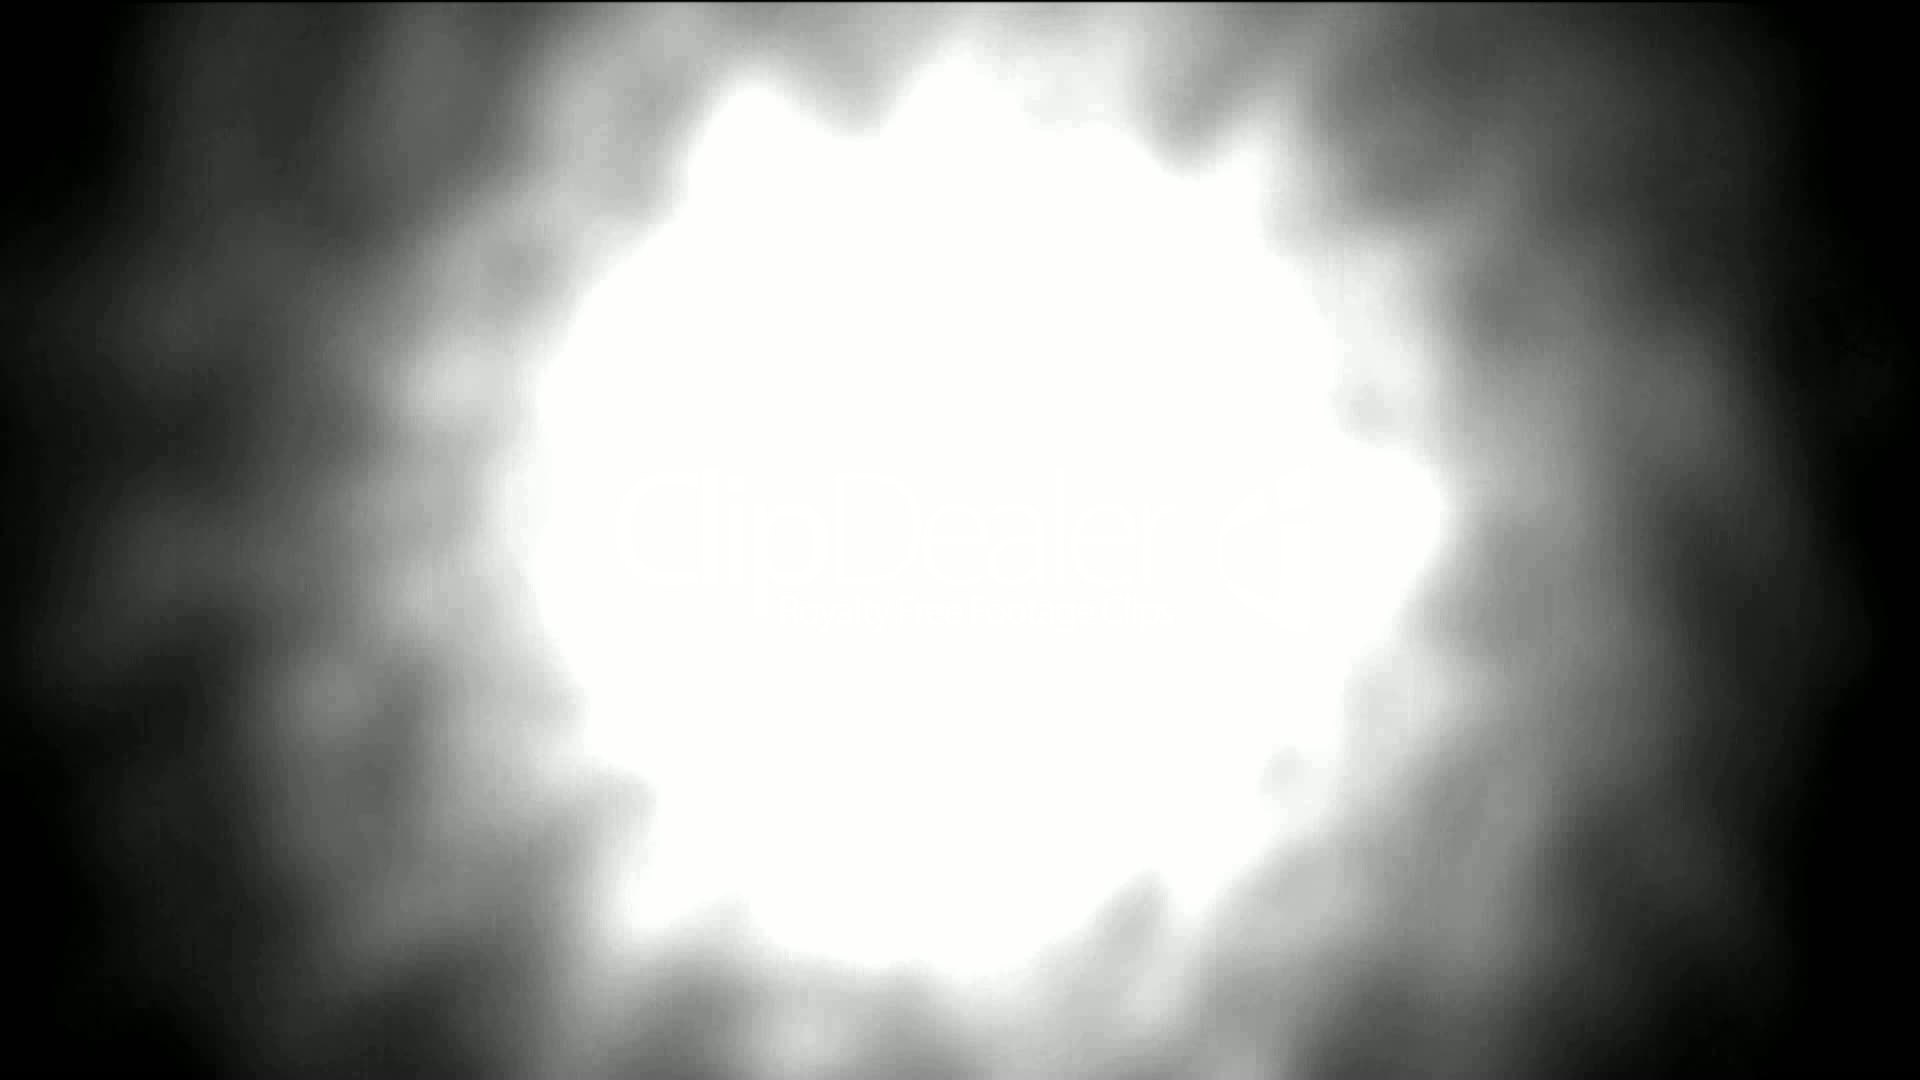 Nuclear Explosion Dazzling White Aura Light Beam Bright